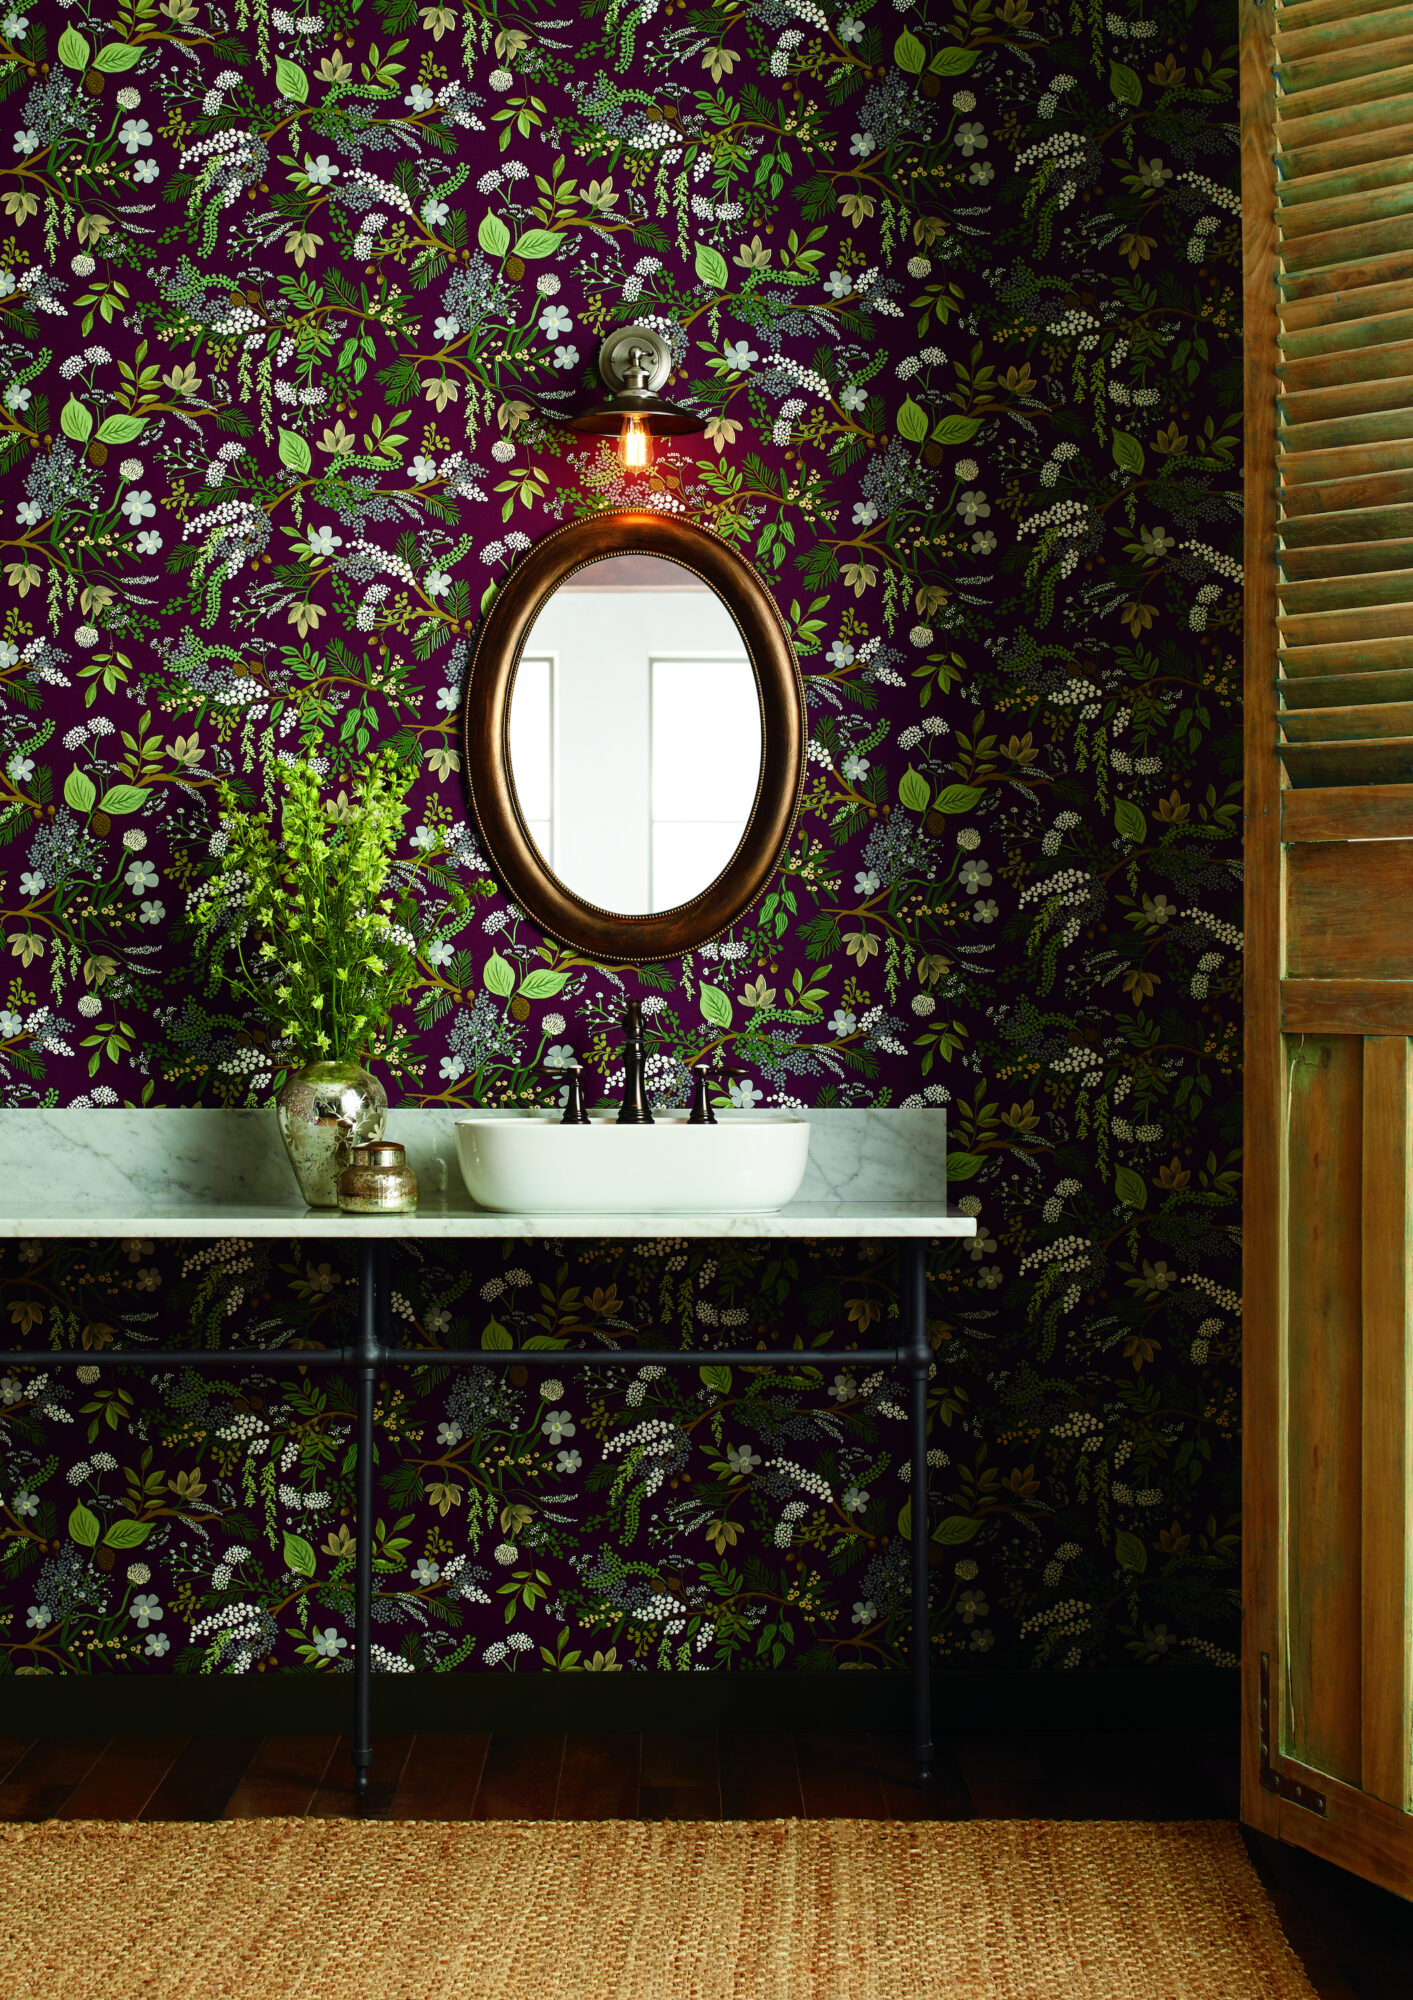 dark red and green forest wallpaper round mirror white sink